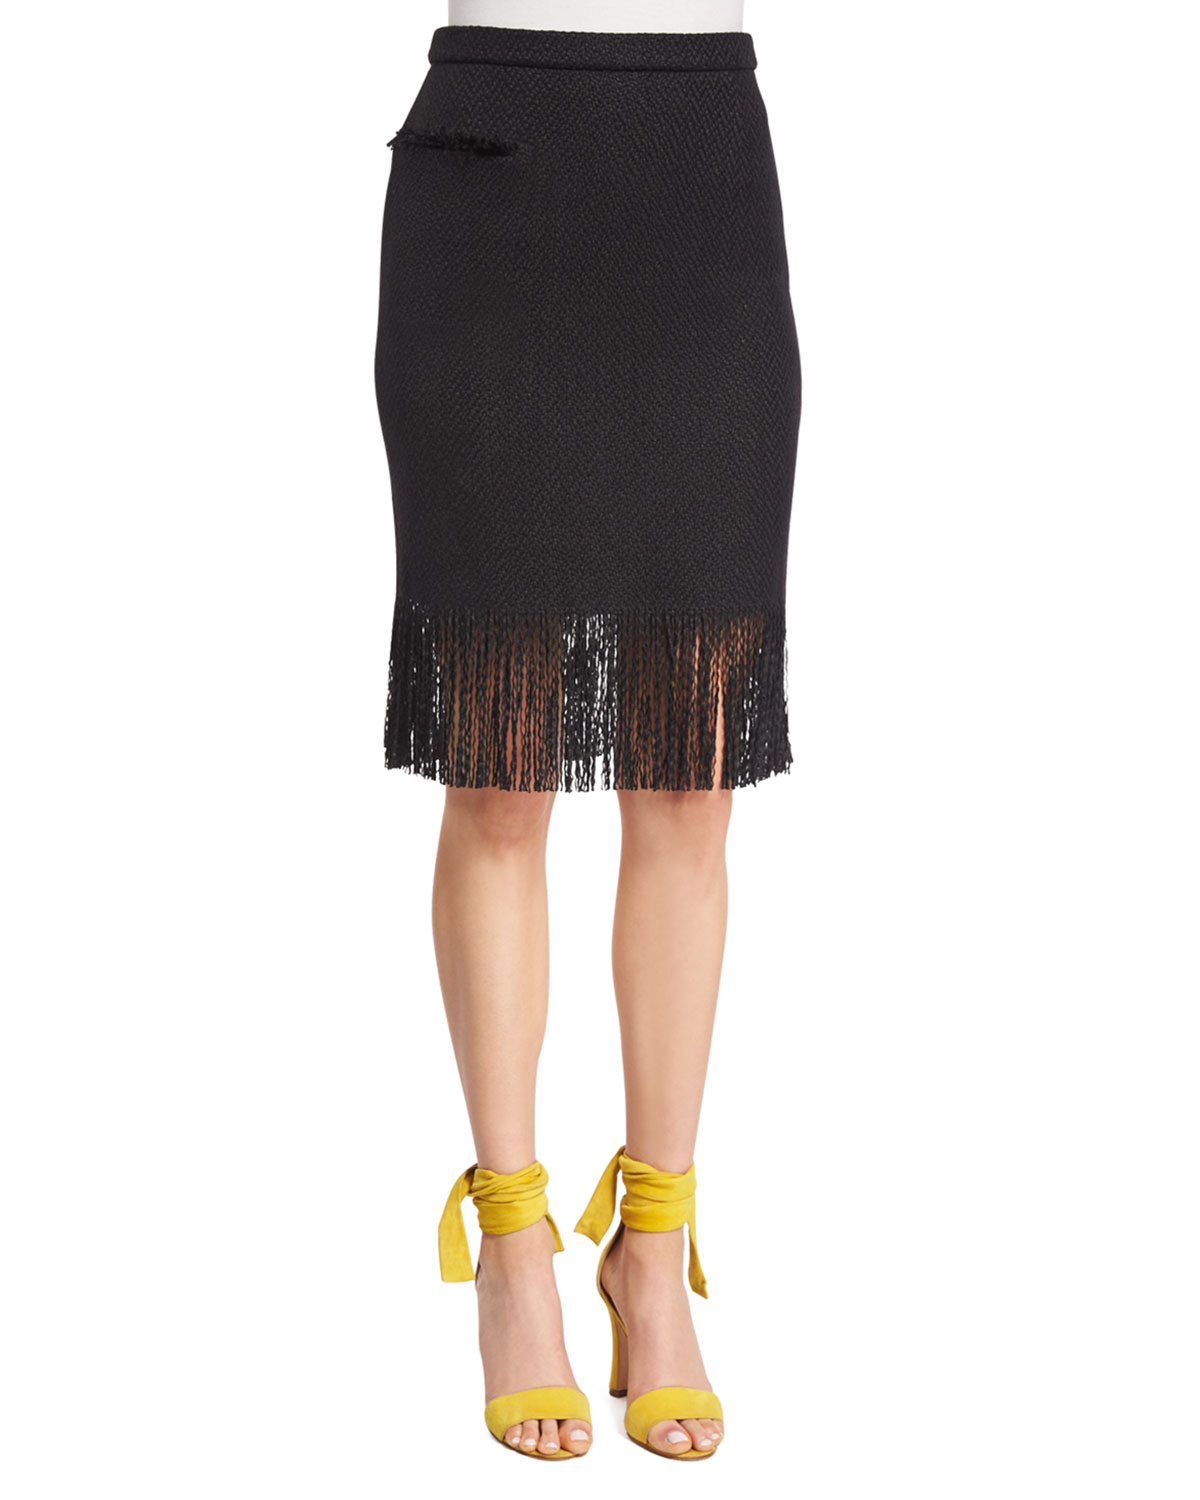 Pencil Skirt W/Fringe Hem, Black